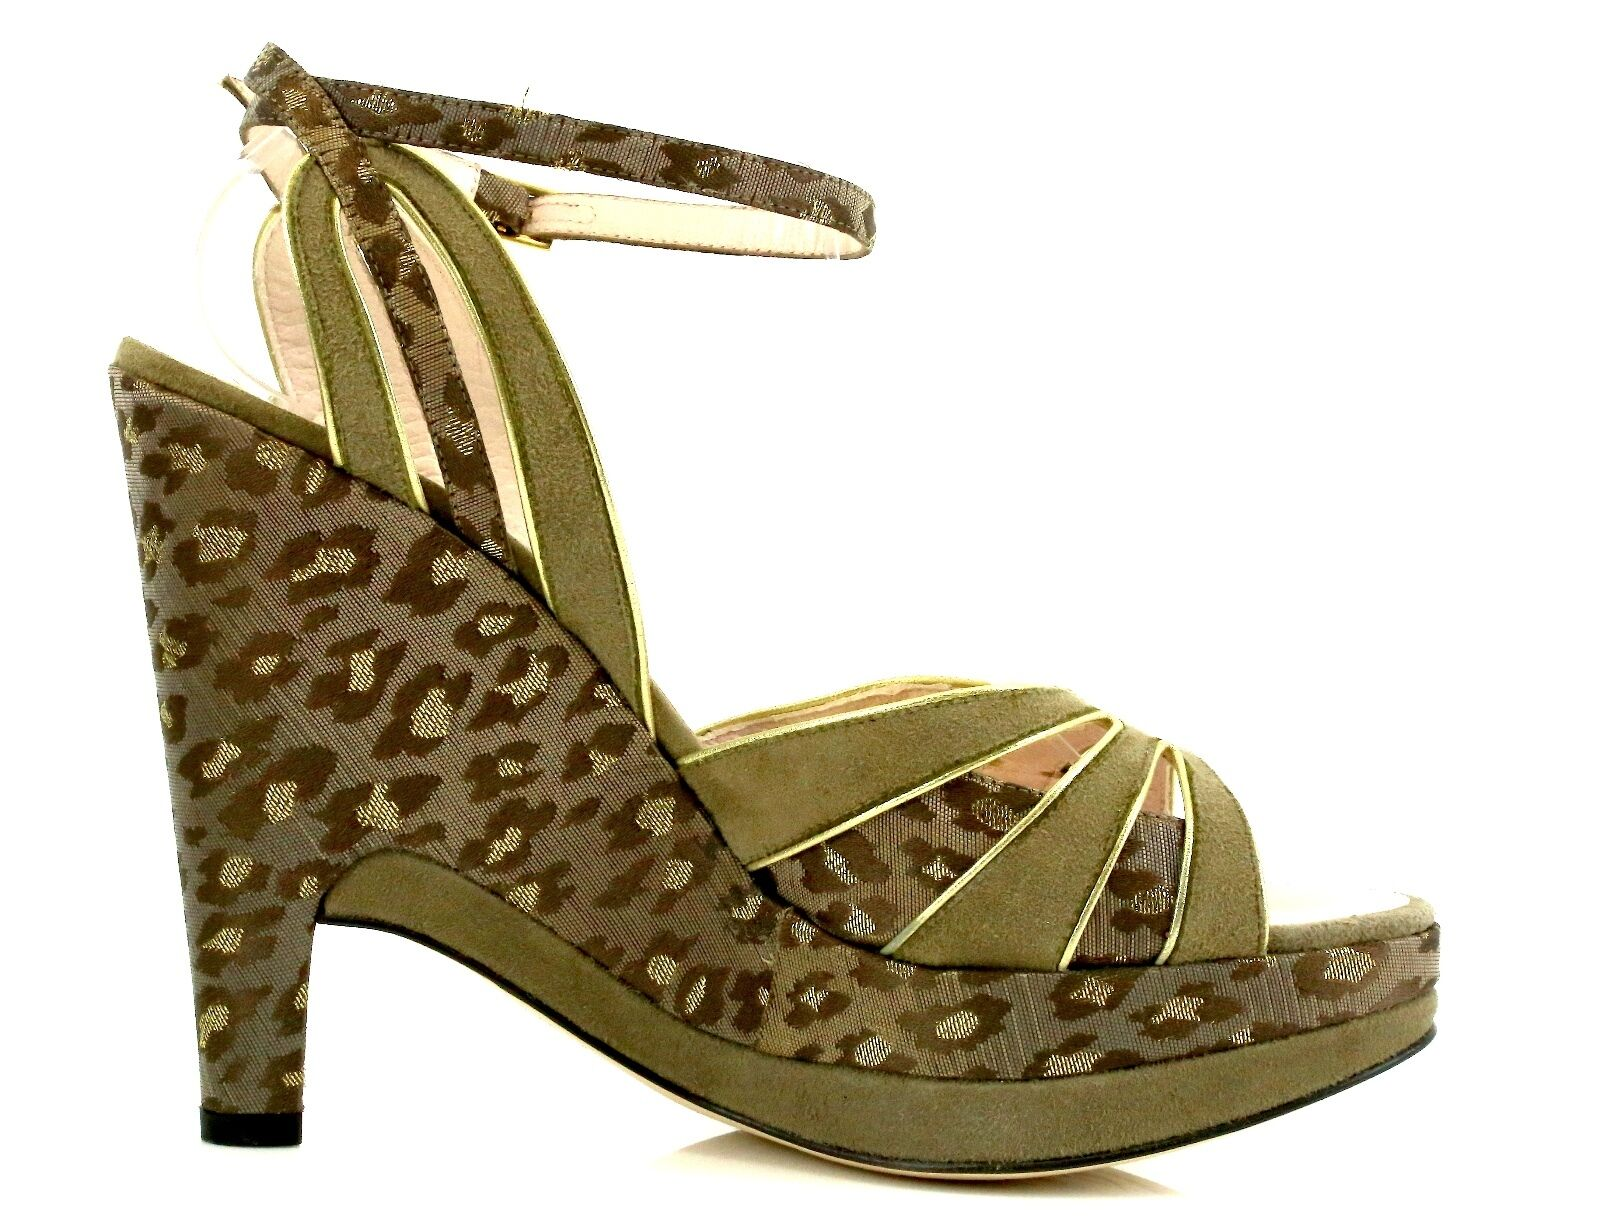 Pollini AEFF Cheetah Print marron Suede Wedge Sandals 7079 Taille Taille Taille 37 EU NEW 76d29e